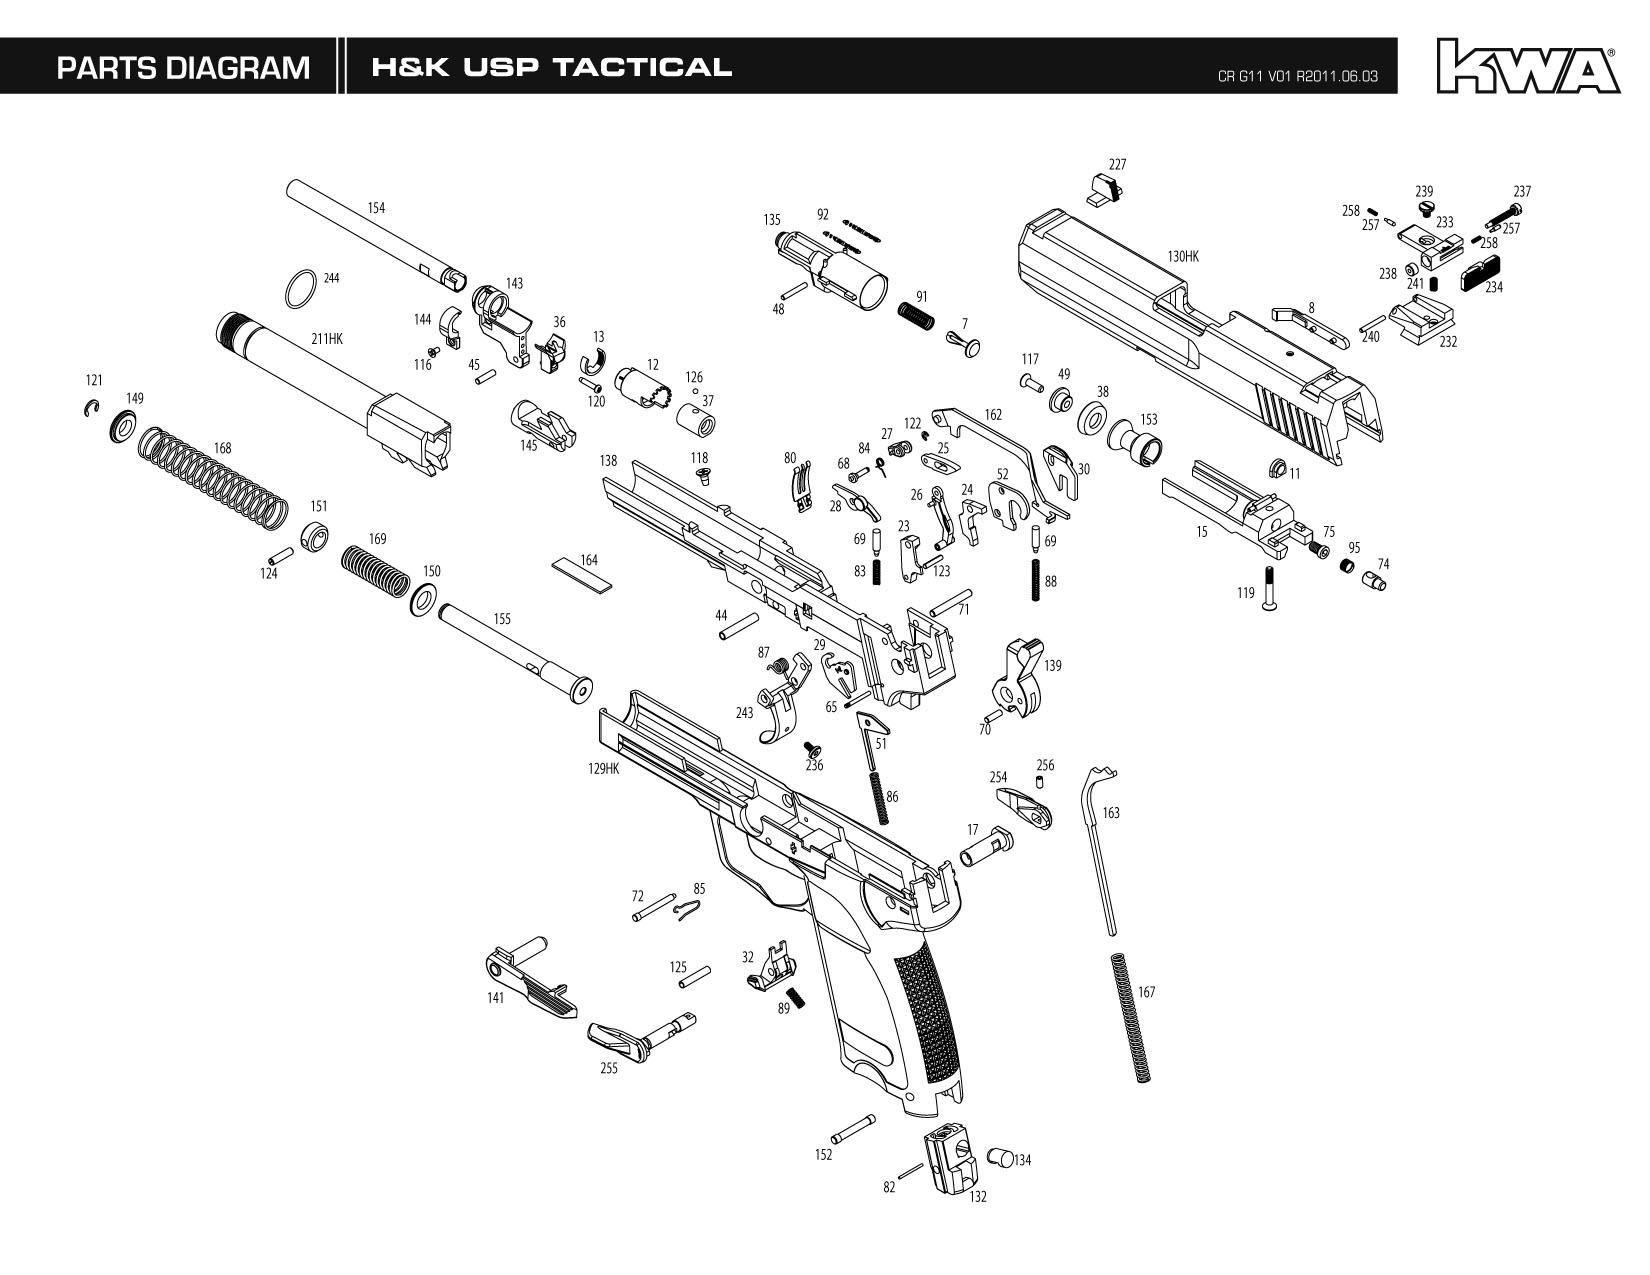 free download kwa h&k usp tactical gas blowback instruction manual schematics for walther p99 airsoft pistol walther p99 diagram #38